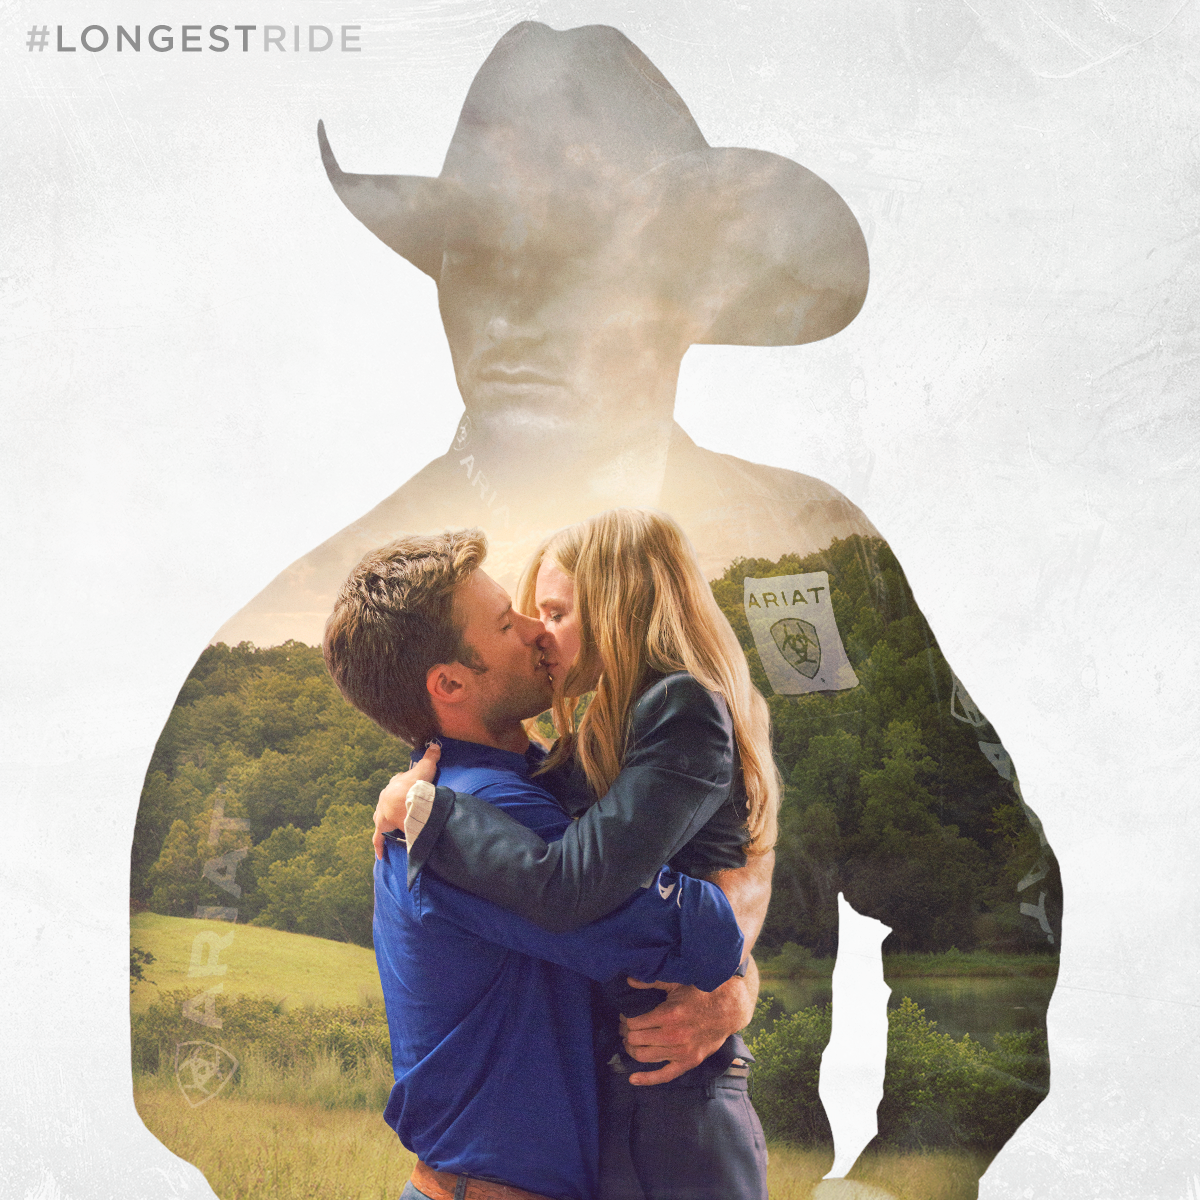 She wasn't like other girls. He was anything but a safe choice. See Britt Robertson and Scott Eastwood in The Longest Ride, now playing.